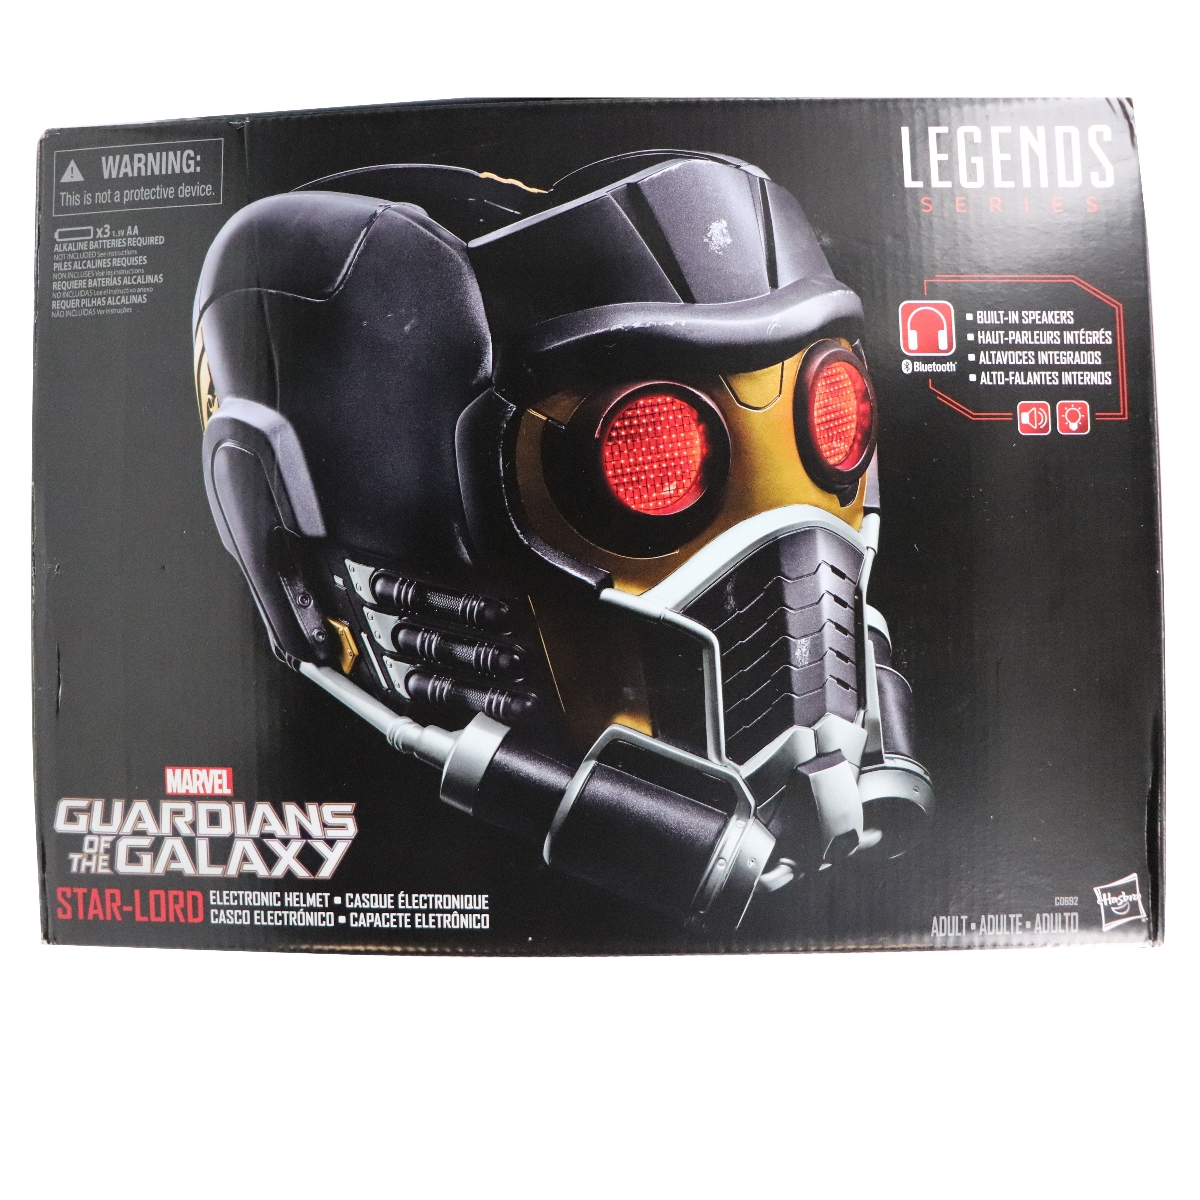 The guardians of the galaxy electronic helmet star-lord marvel legends c0692